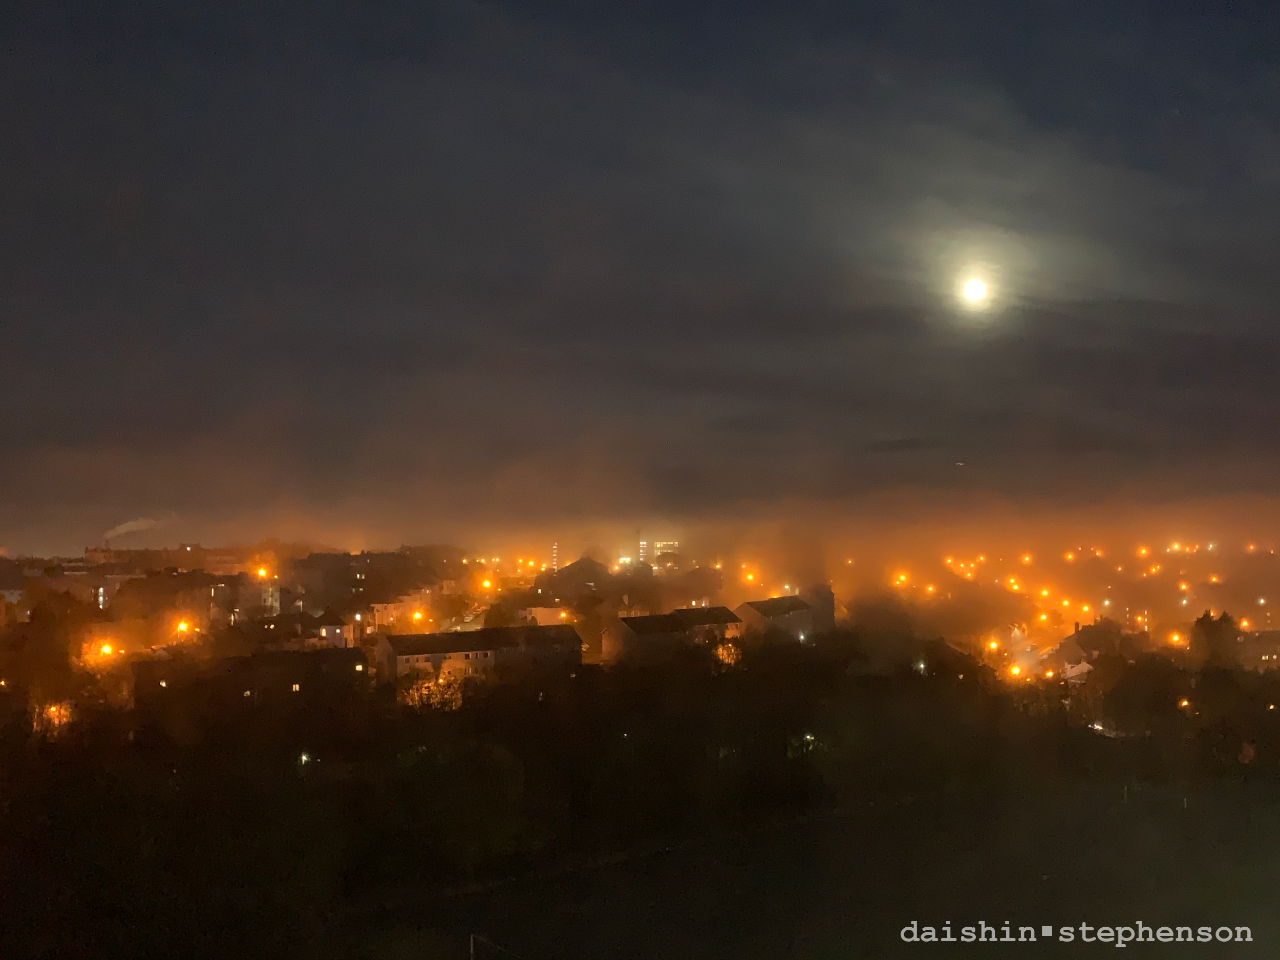 nighttime. fog rolling over neighbourhood illuminated by moon and streetlights